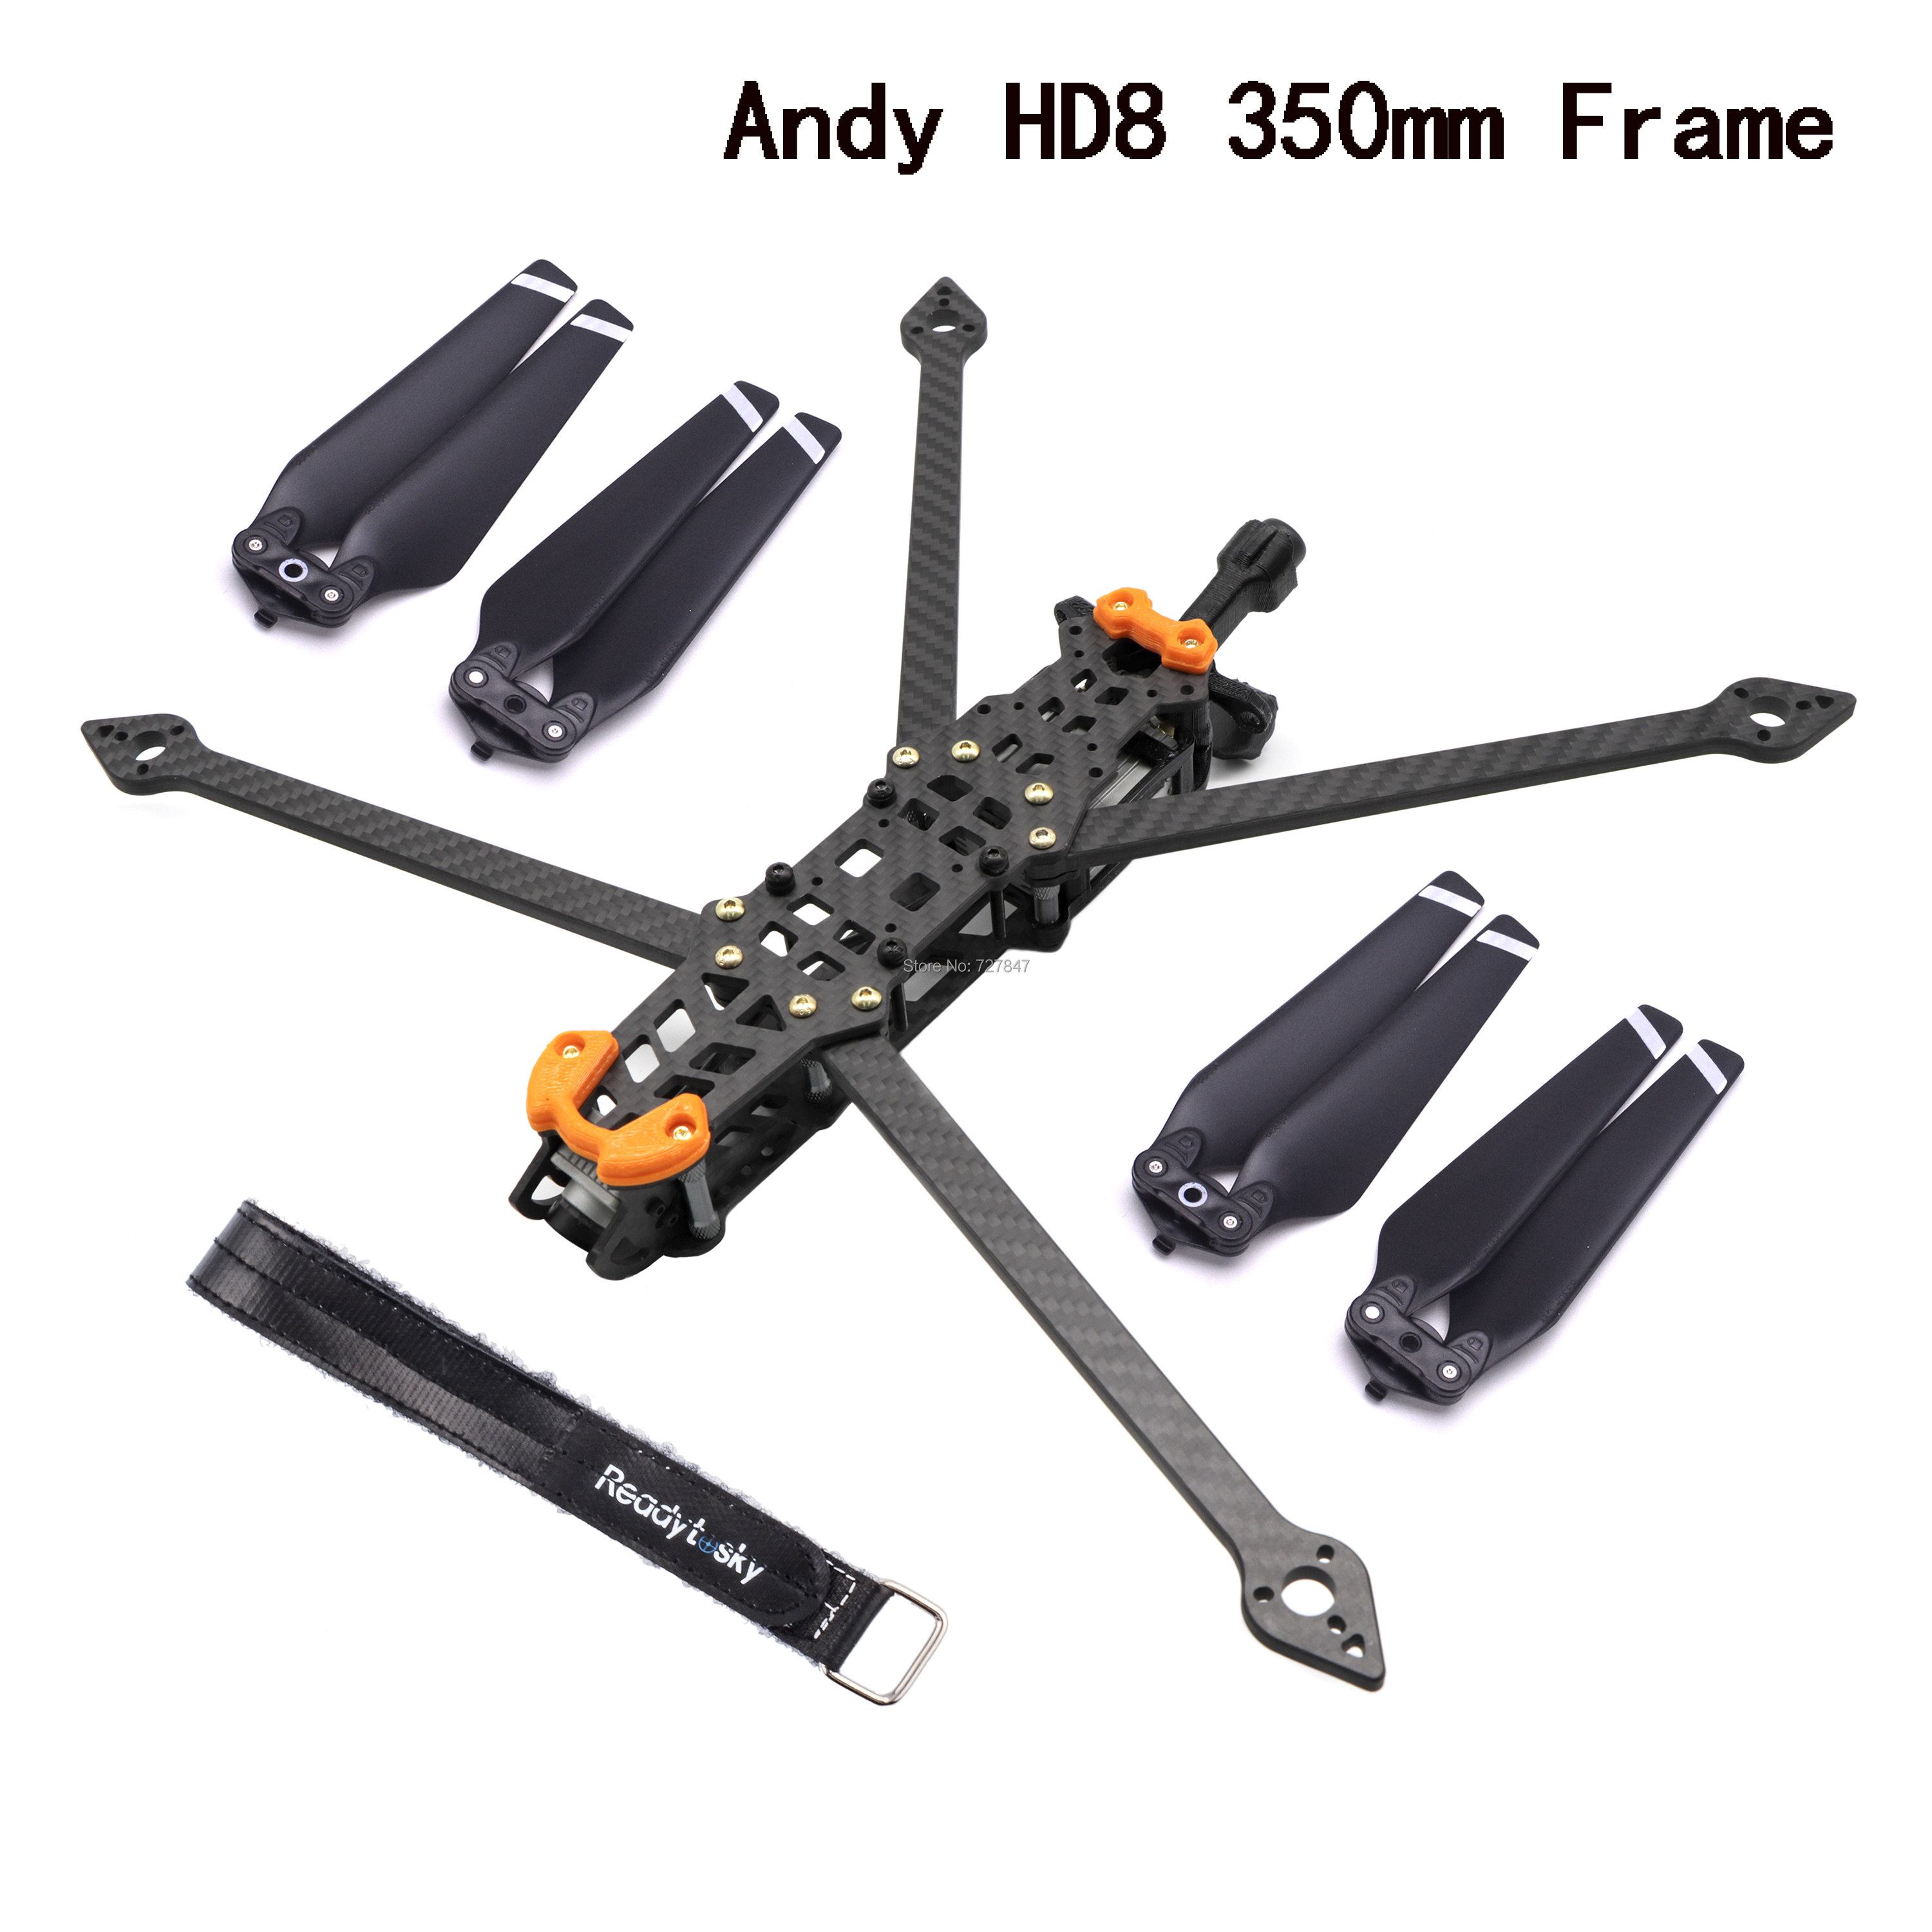 Andy HD8 350mm 8inch With 5mm Arm TPU 3D Printing Parts FPV Racing Drone Quadcopter Freestyle Frame For Martian Rooster QAV-X